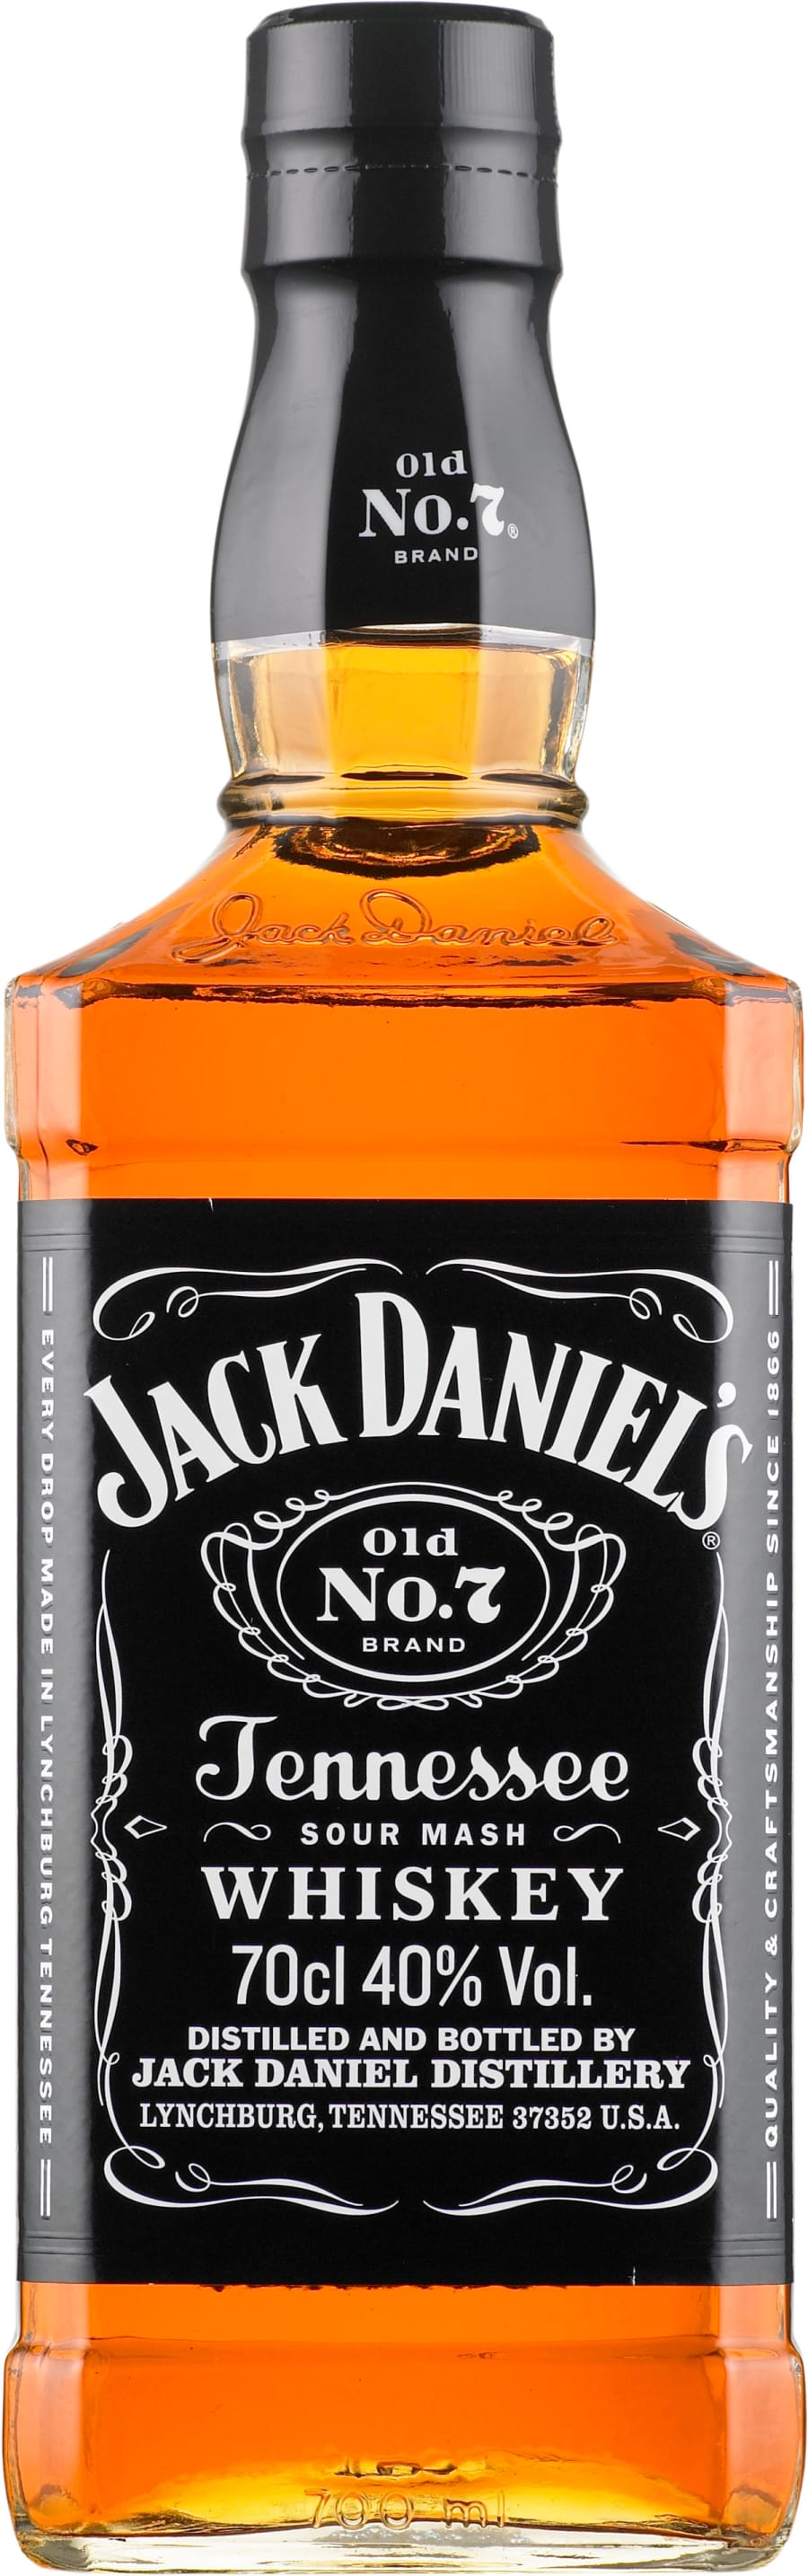 Jack Daniels Bottle Png (106+ images in Collection) Page 1.